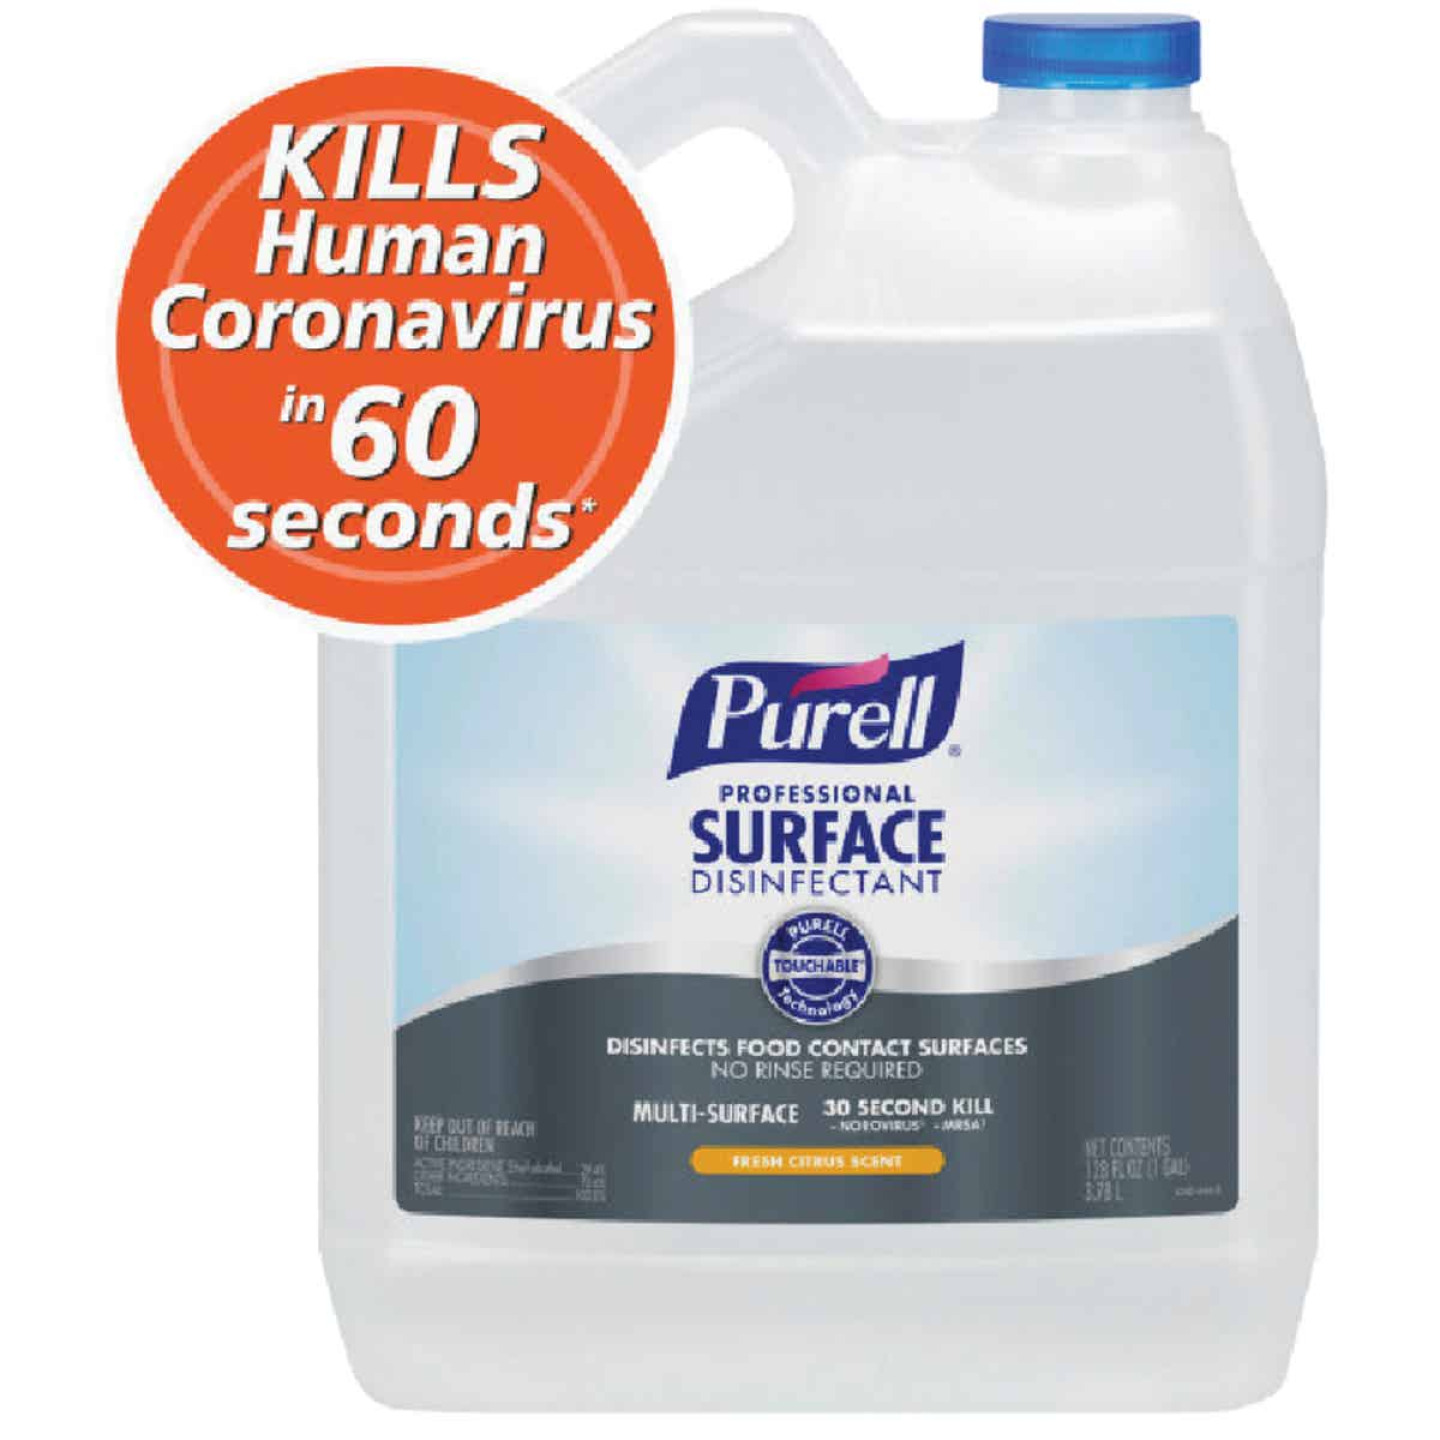 Purell 1 Gal. Professional Surface Disinfectant Cleaner Refill Image 1